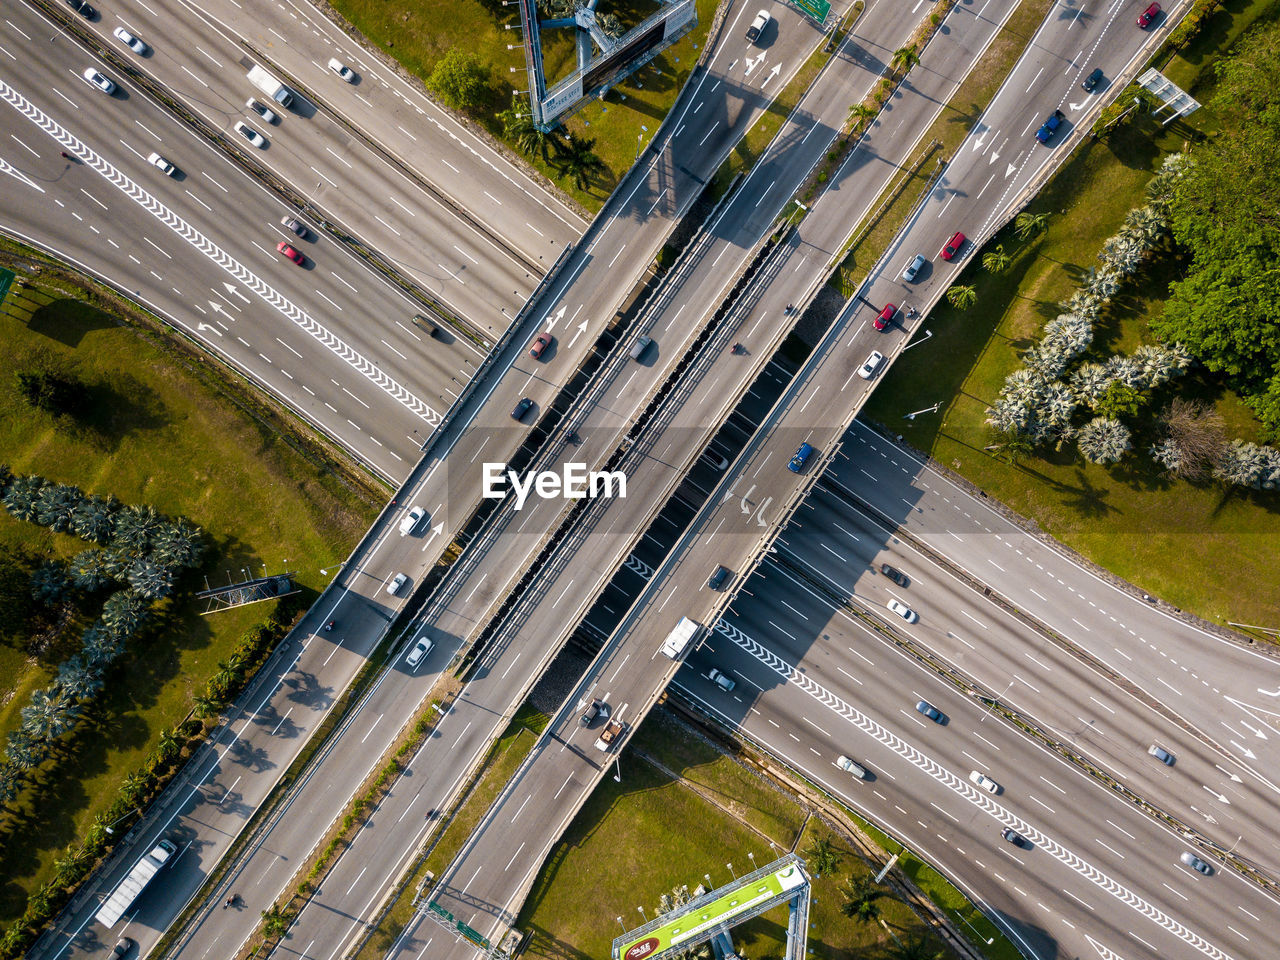 HIGH ANGLE VIEW OF CARS ON STREET